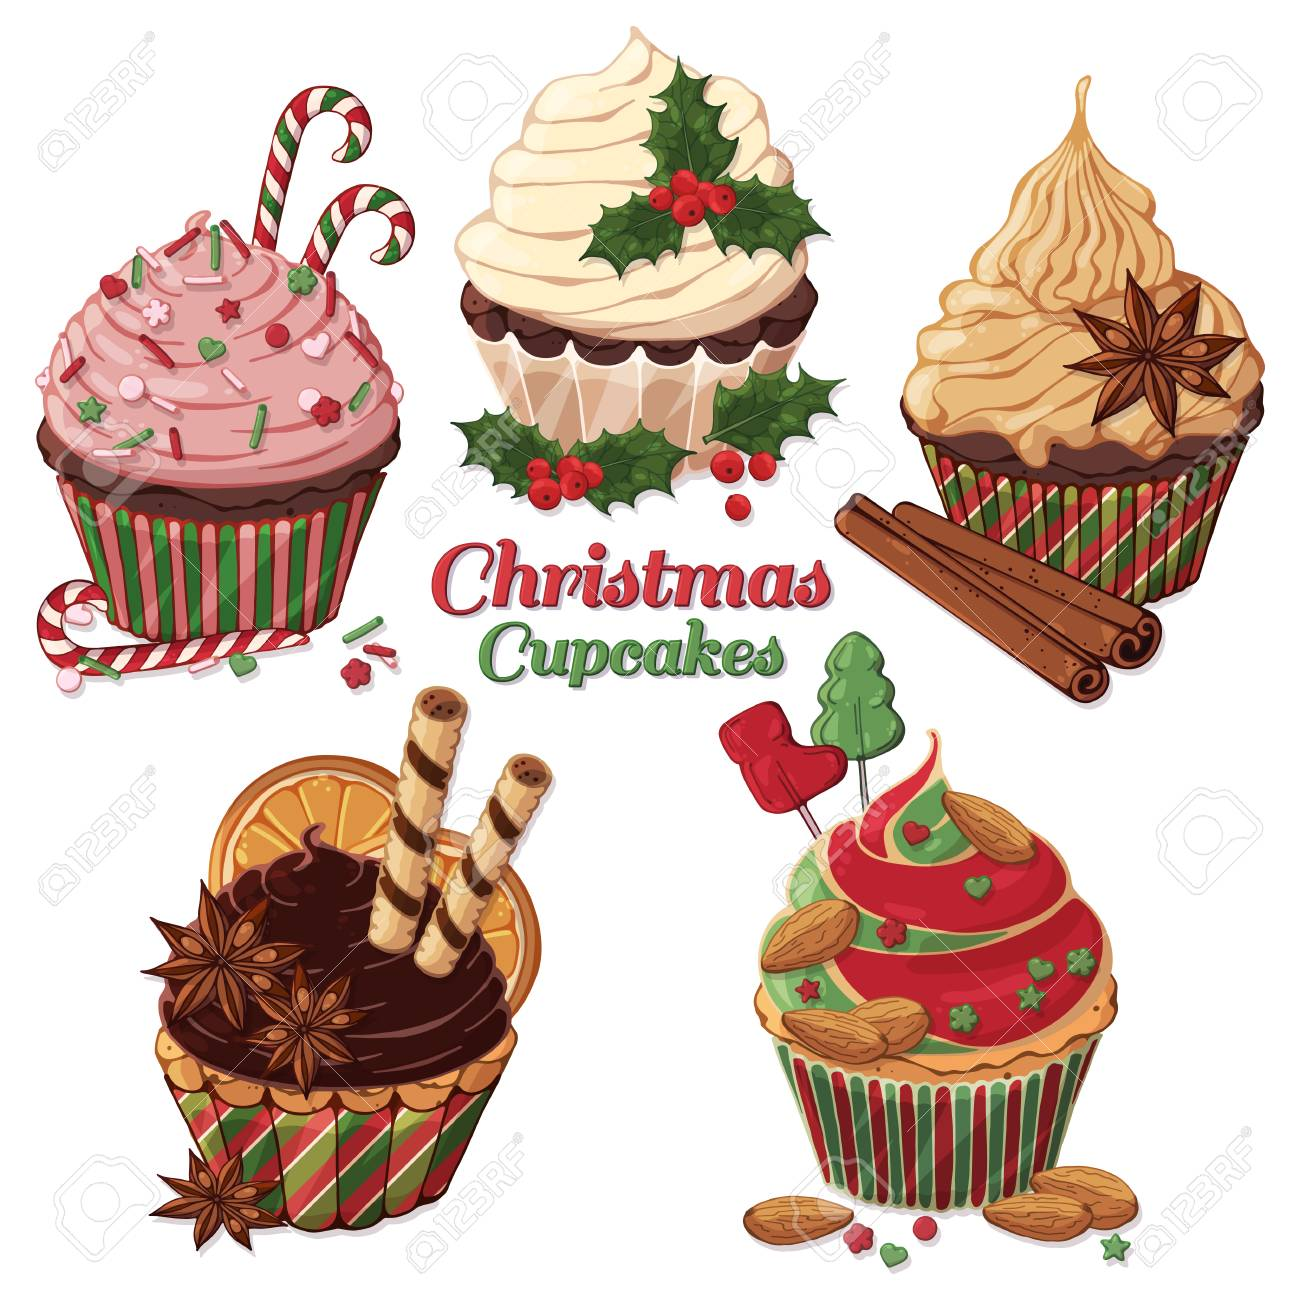 Christmas Sweets.Group Of Vector Colorful Illustrations On The Christmas Sweets